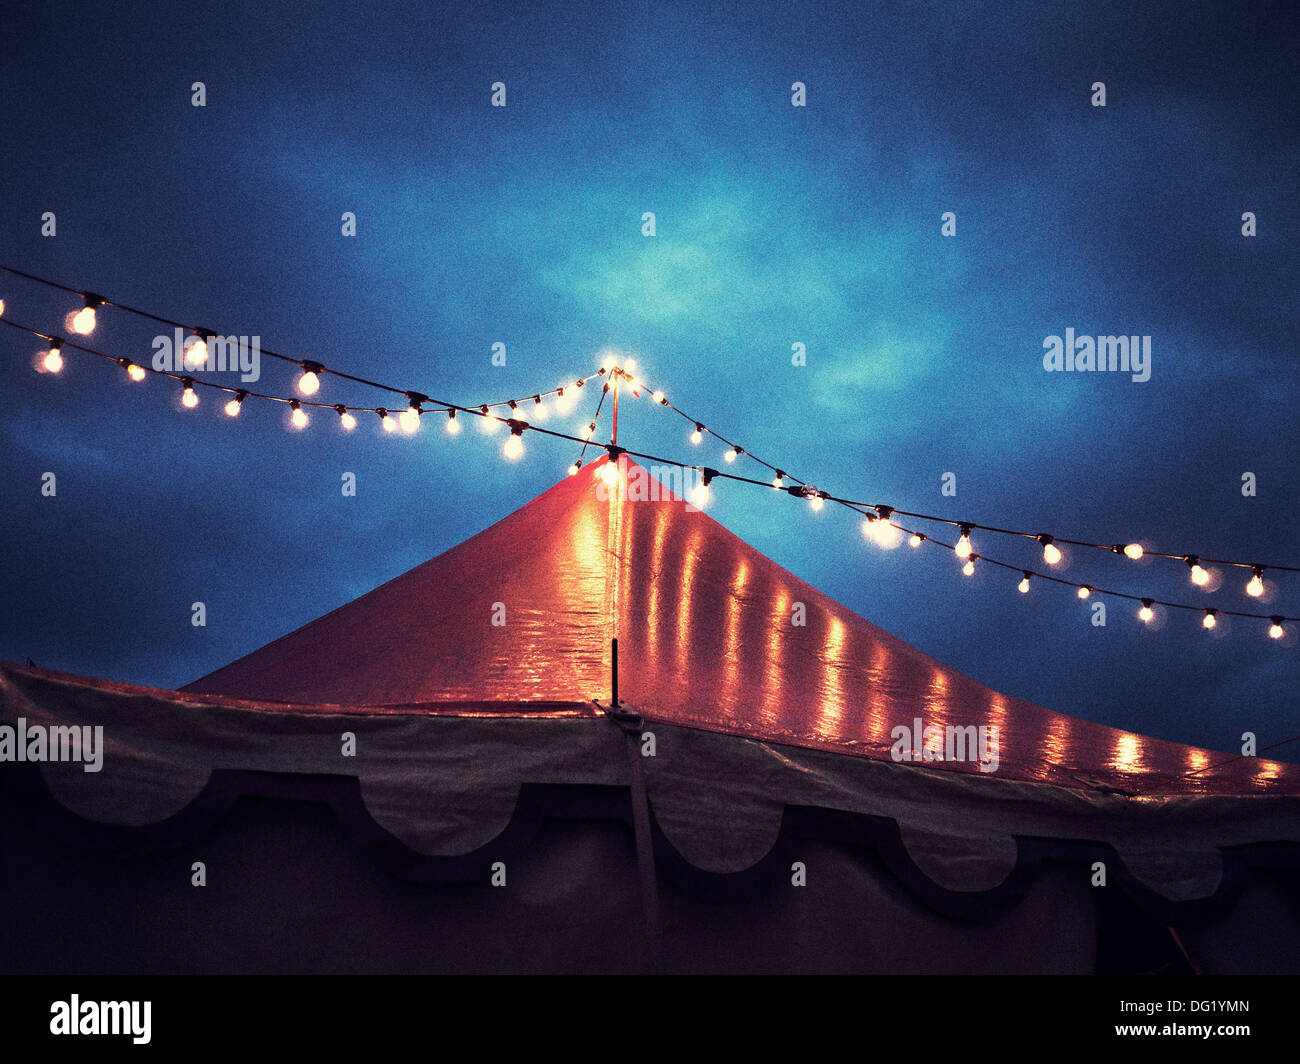 String Lights At Night : Circus Tent and String of Lights at Night, Low Angle View Stock Photo, Royalty Free Image ...